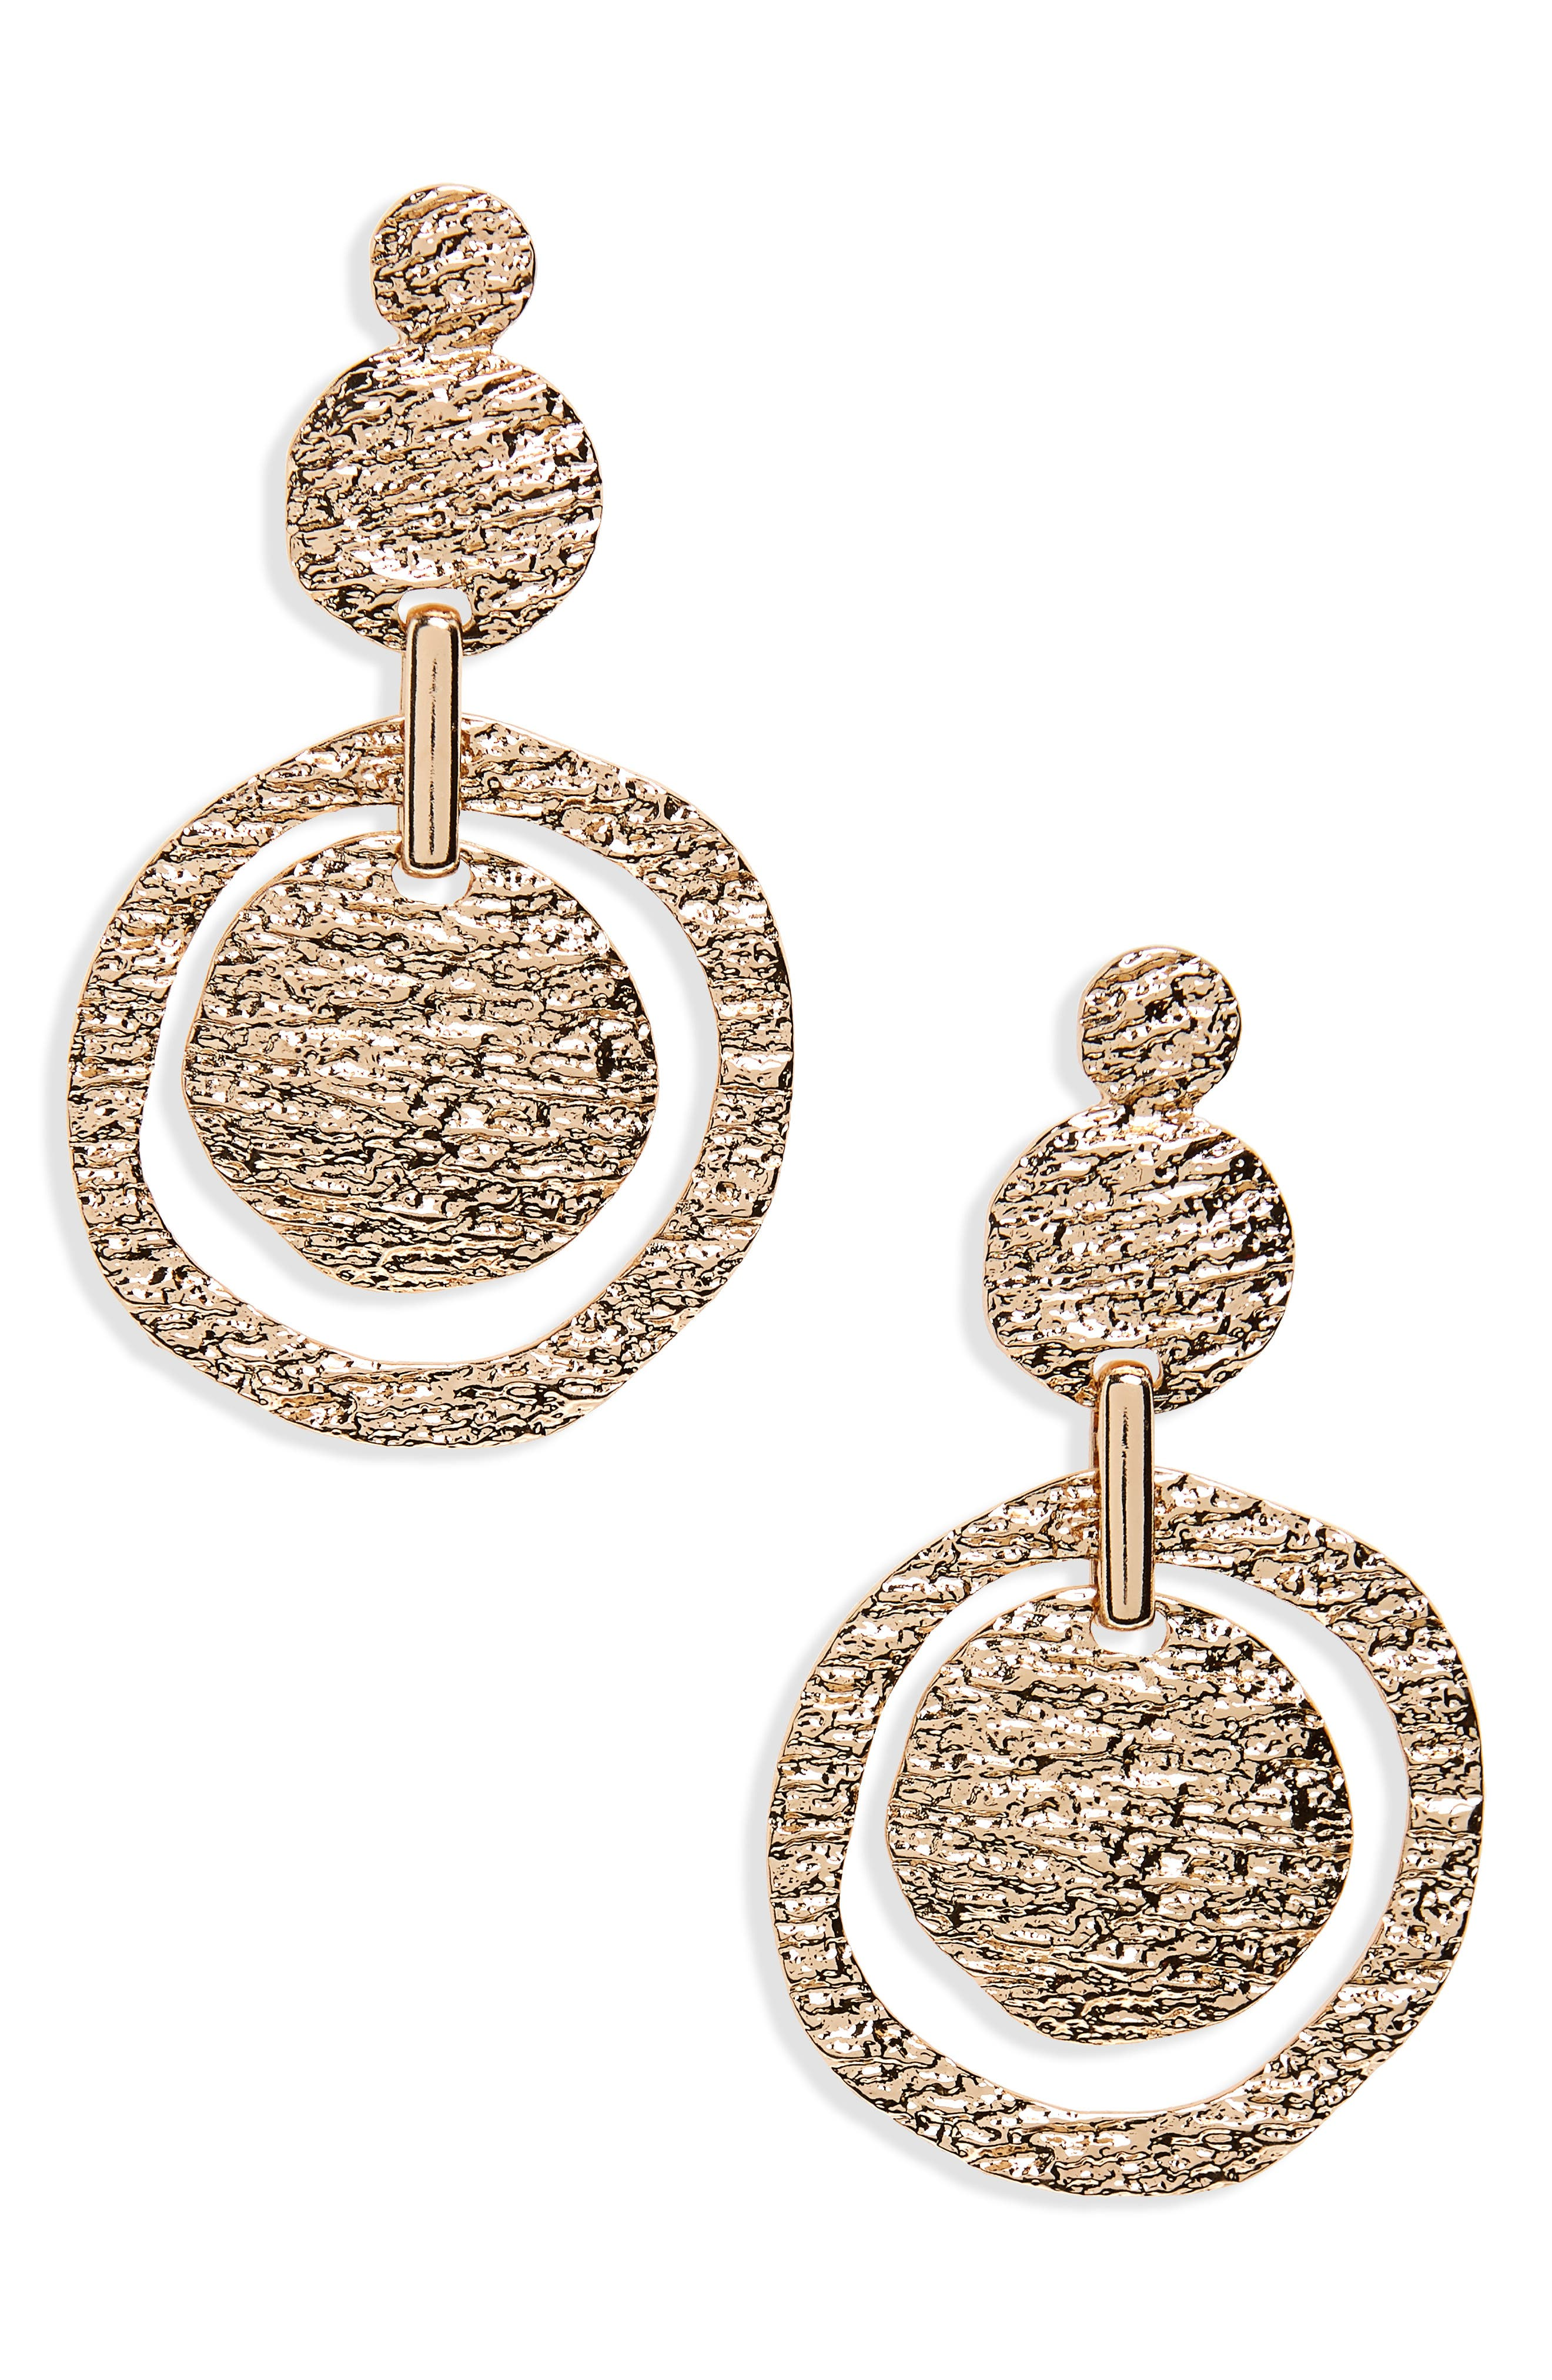 Molten Metal Statement Earrings,                         Main,                         color, Gold